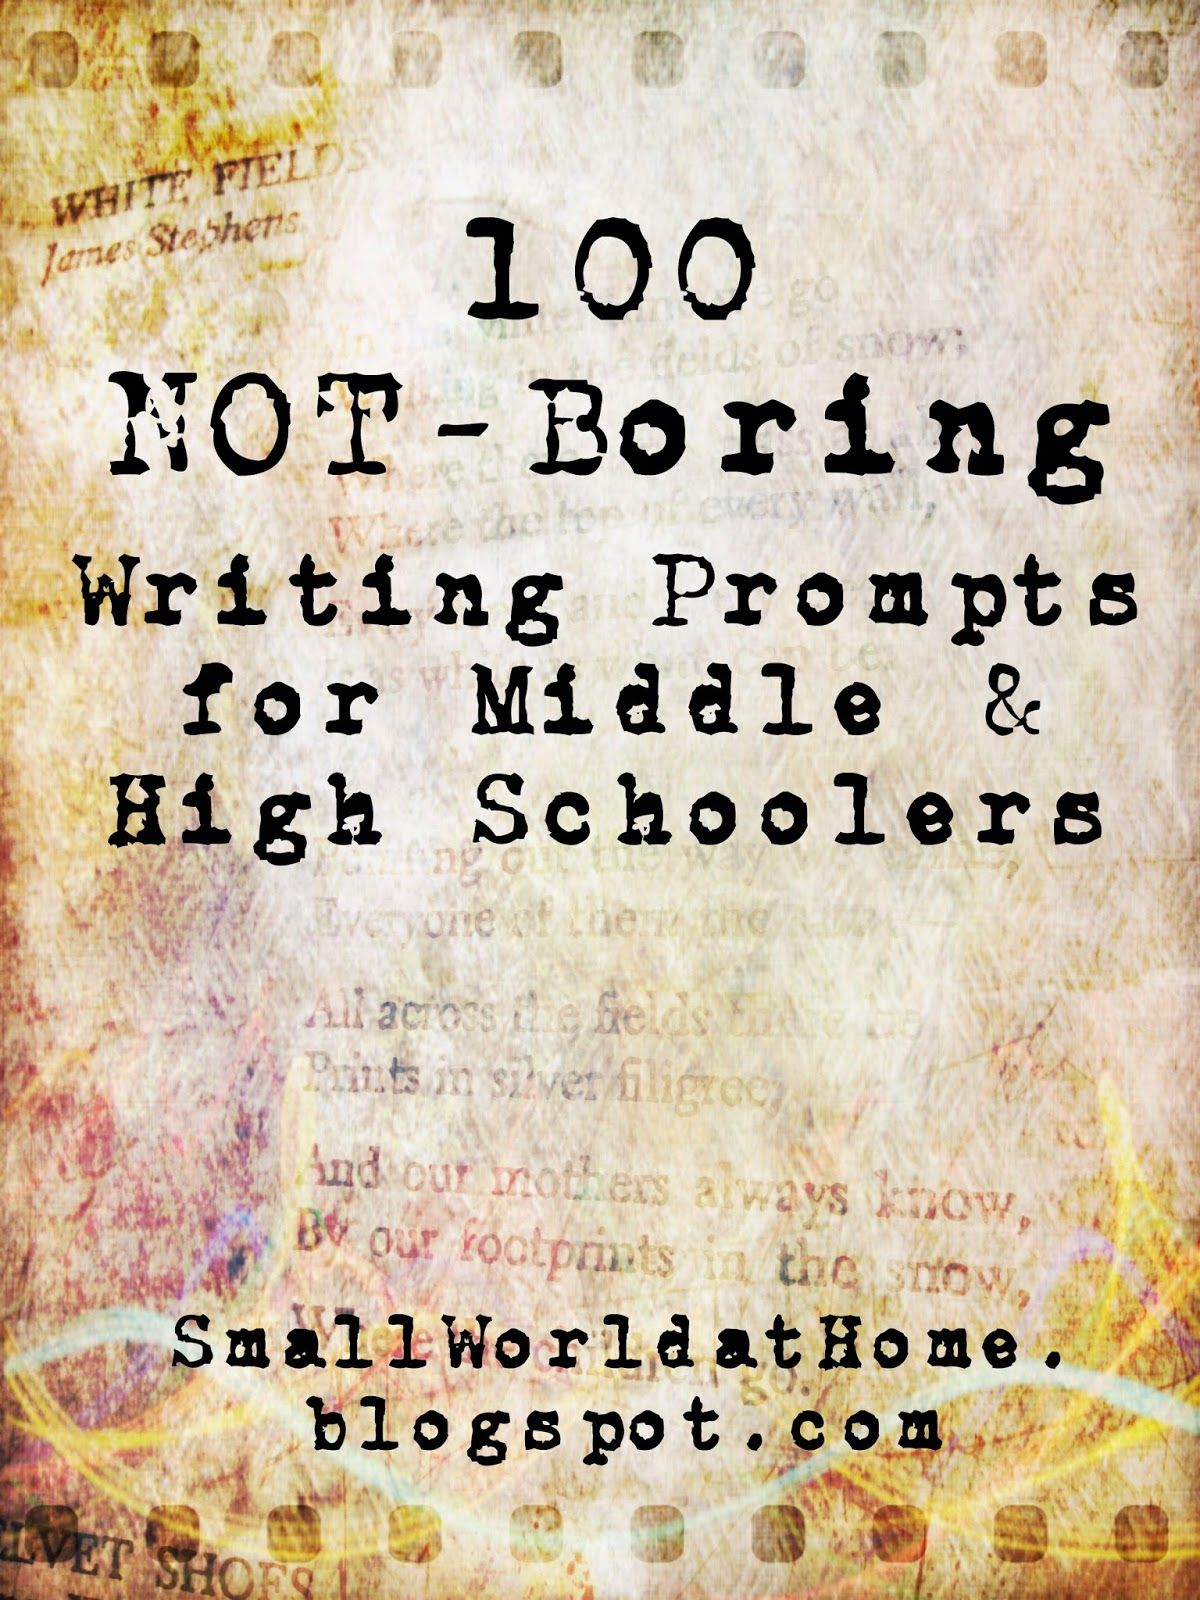 Free List Of  Notboring Writing Prompts For Middle And High  Free List Of  Notboring Writing Prompts For Middle And High School  Students